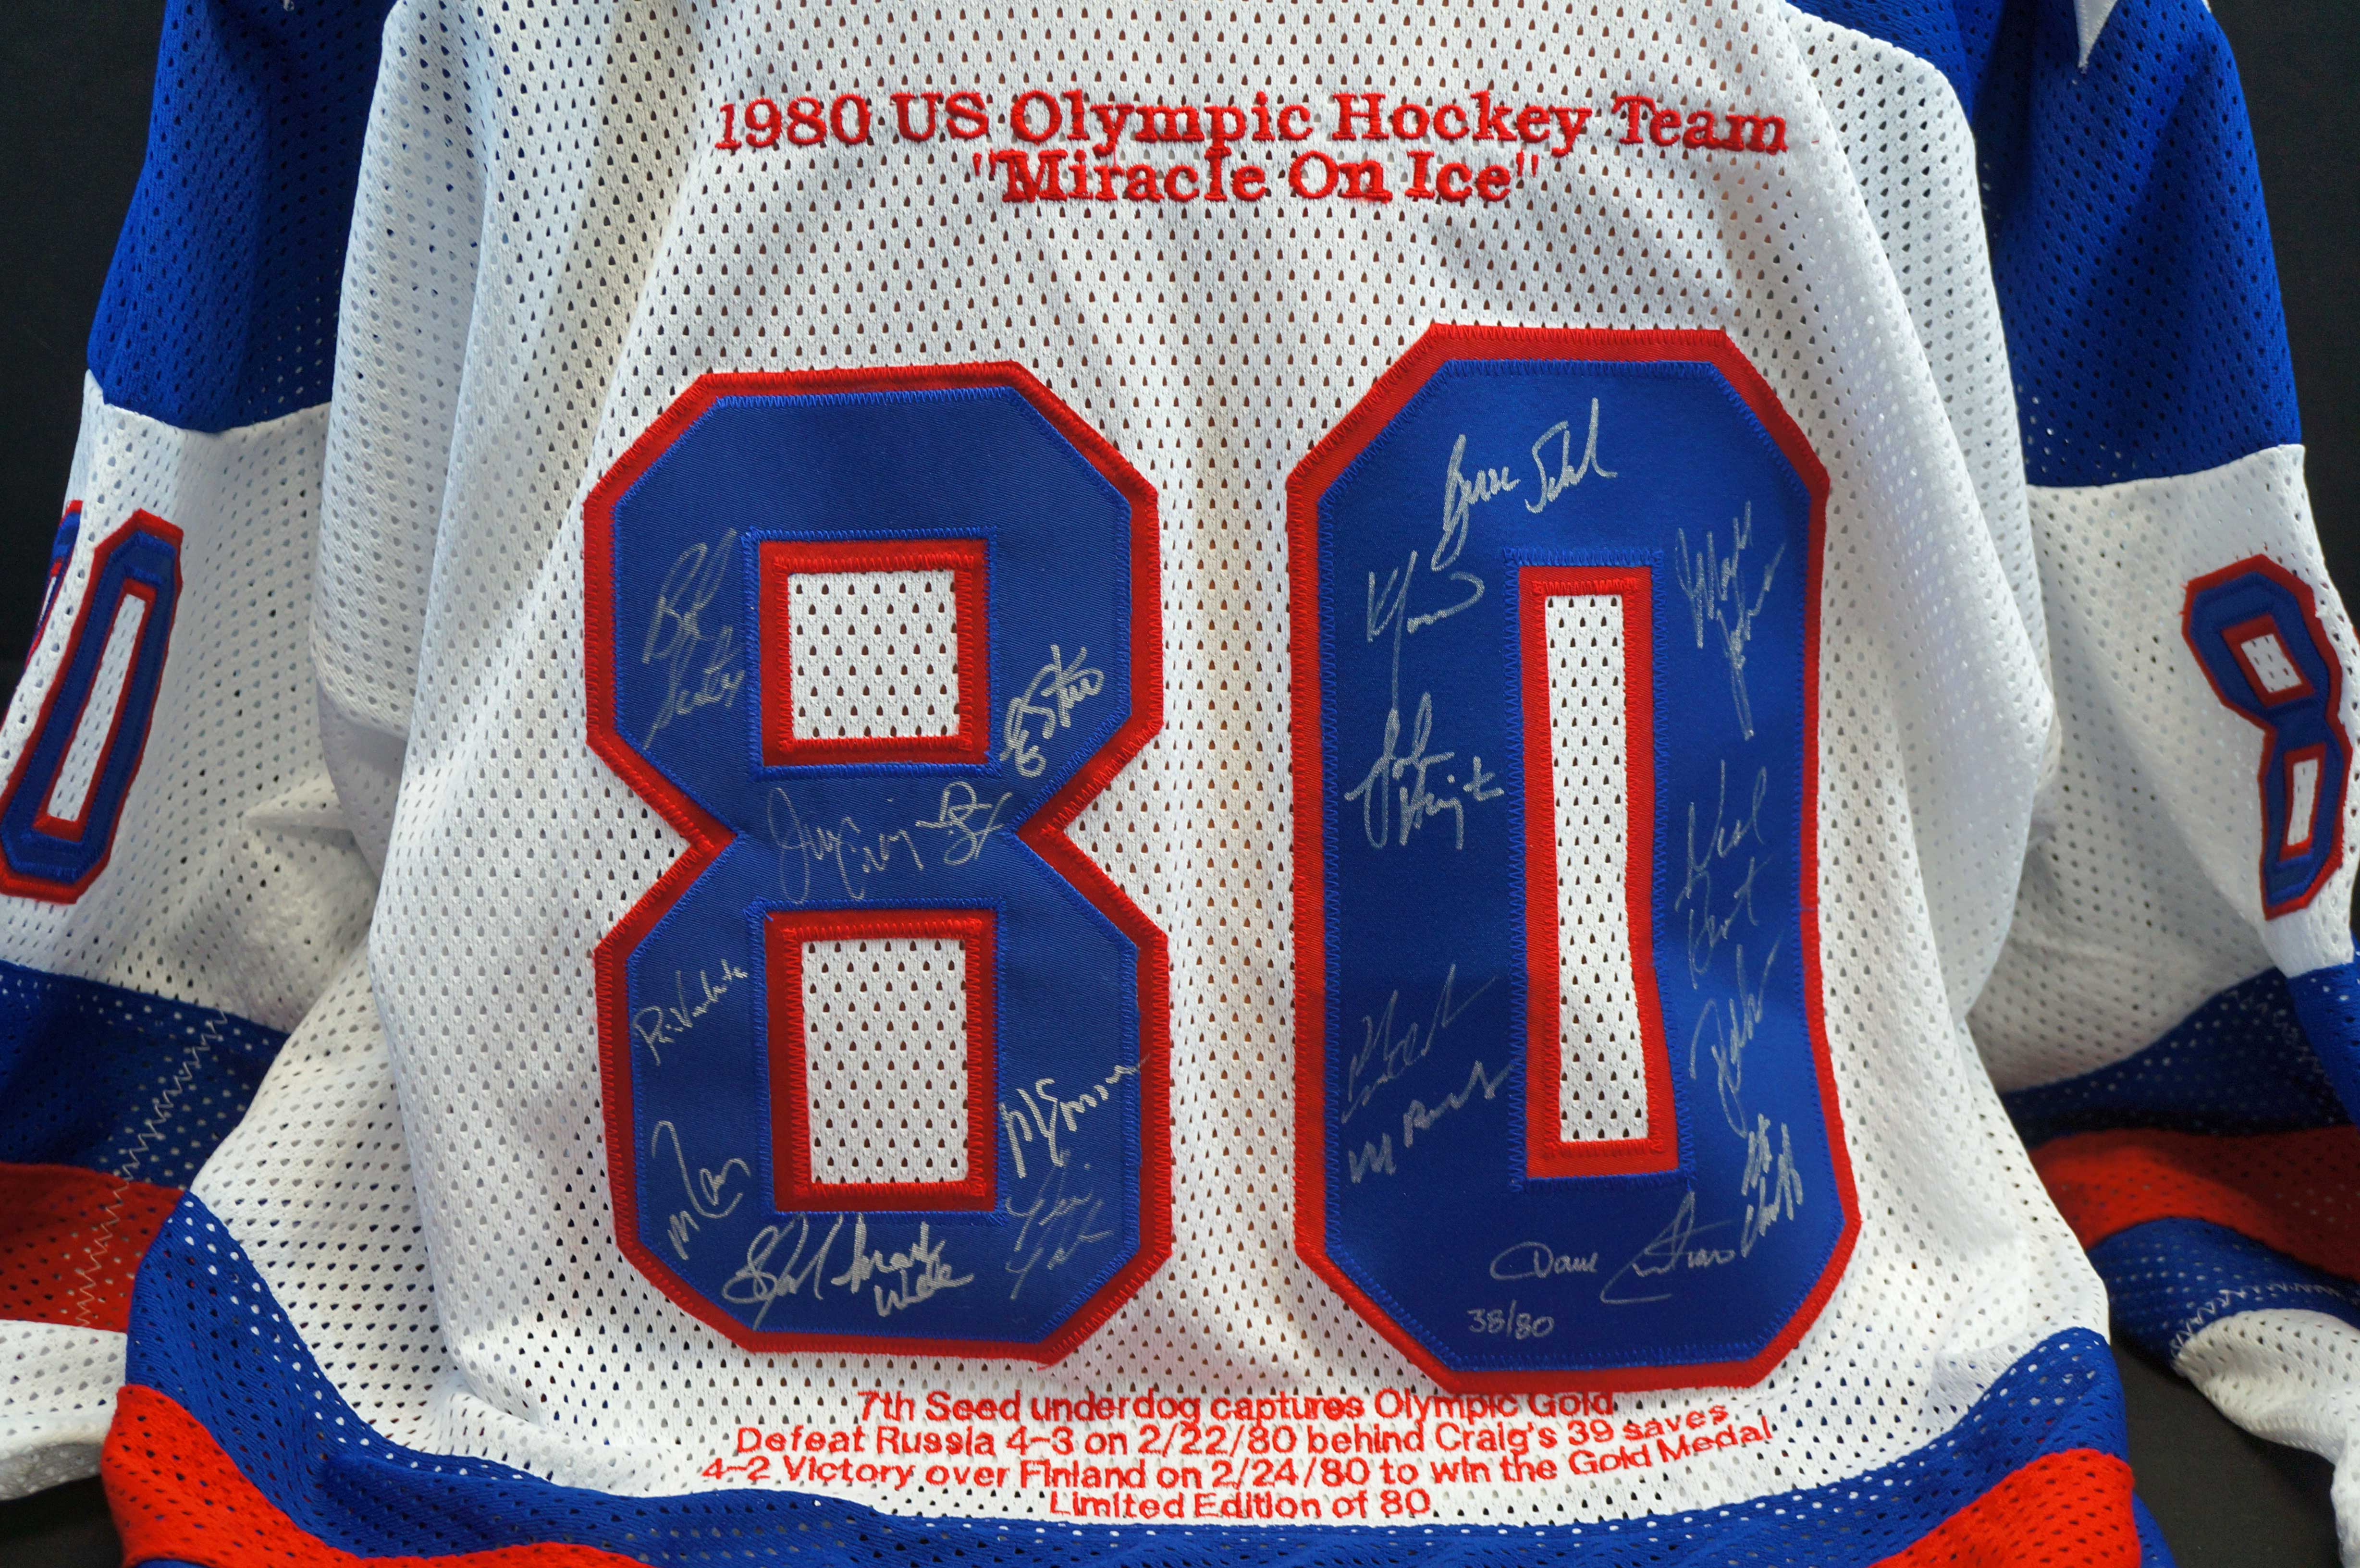 Lot 328 Team USA Hockey Autographed 1980 Gold Medal Team